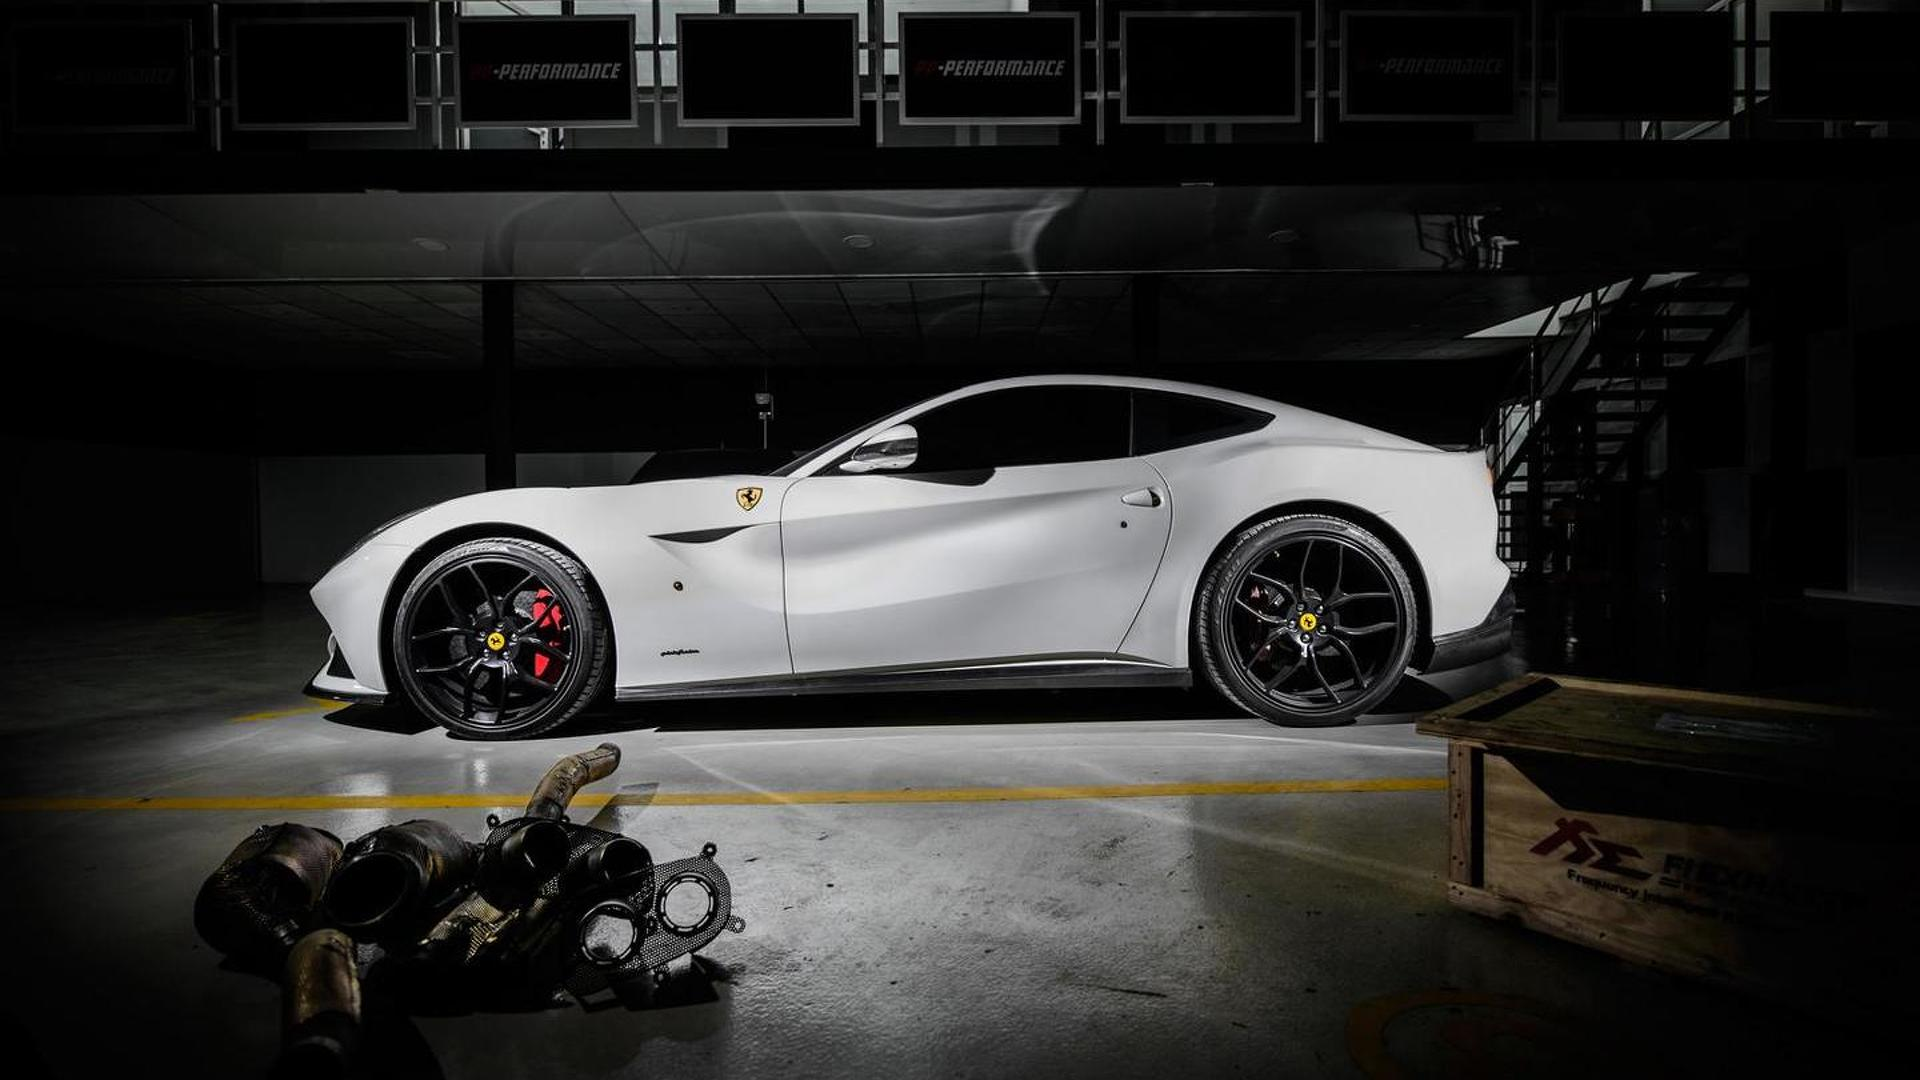 Ferrari F12 Berlinetta Upgraded To 795 Hp By Pp Performance